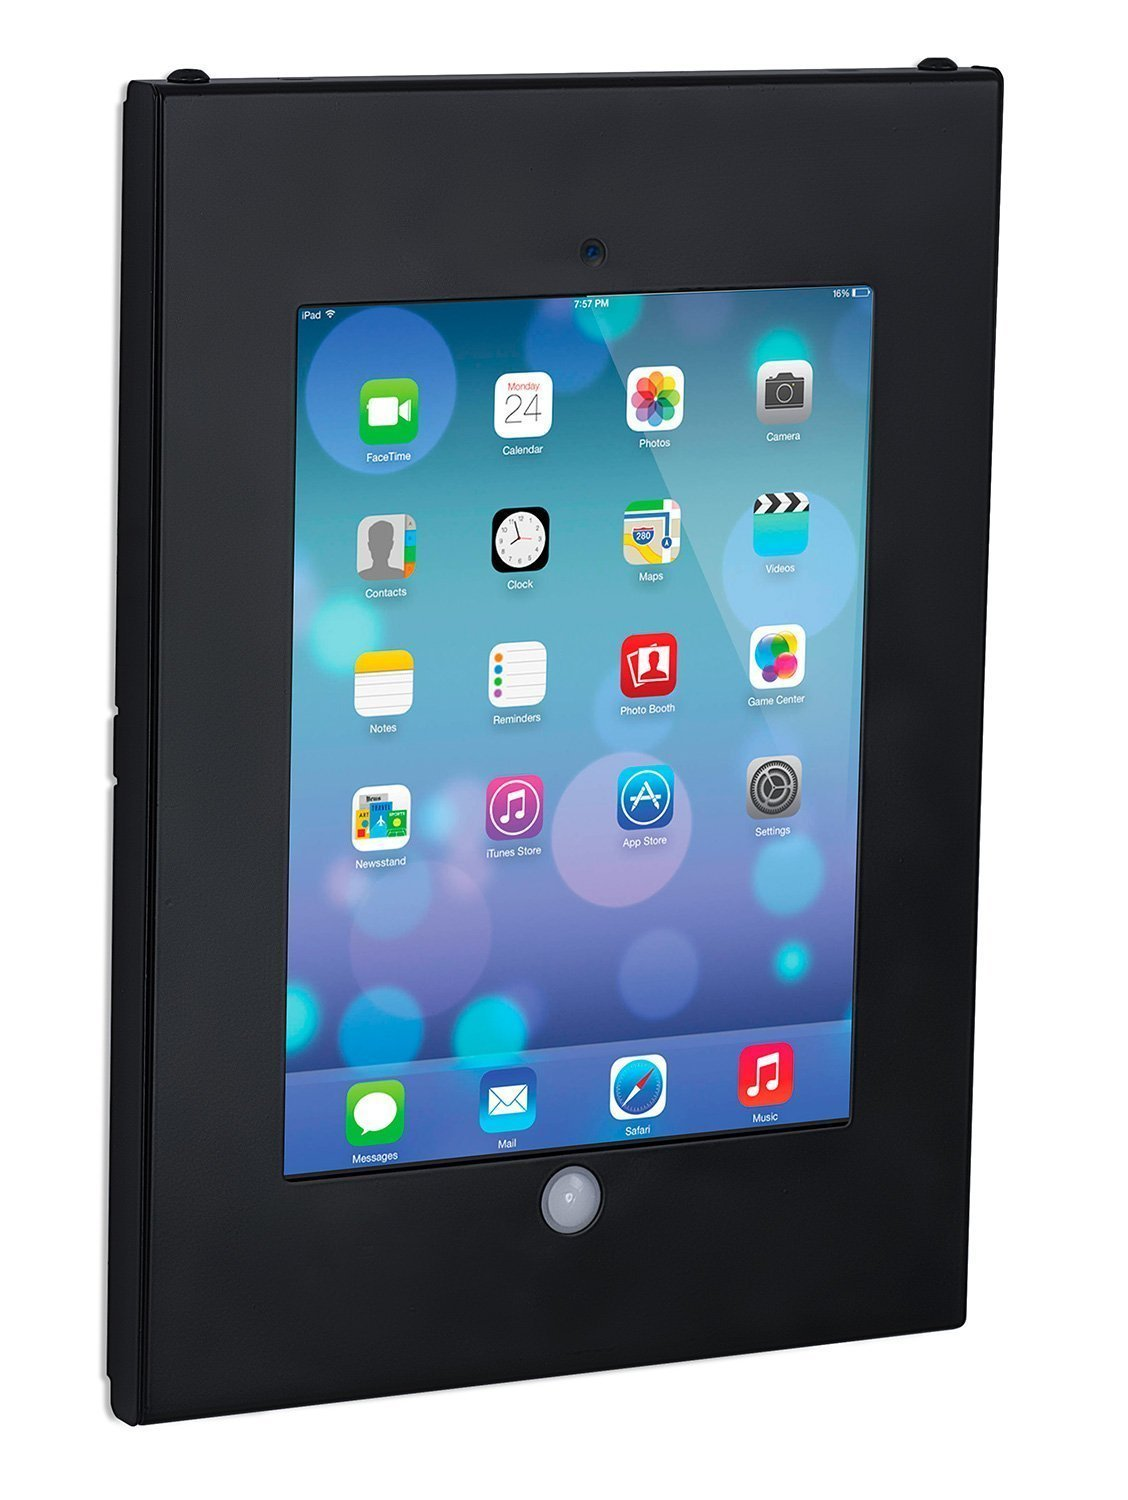 Mount-It! Tablet Wall Mount with Anti-Theft Locking Function, Fits iPad, 2, 3, 4, Air, Air 2, iPad Pro 9.7, or Other 9.7 Inch Tablets, Black